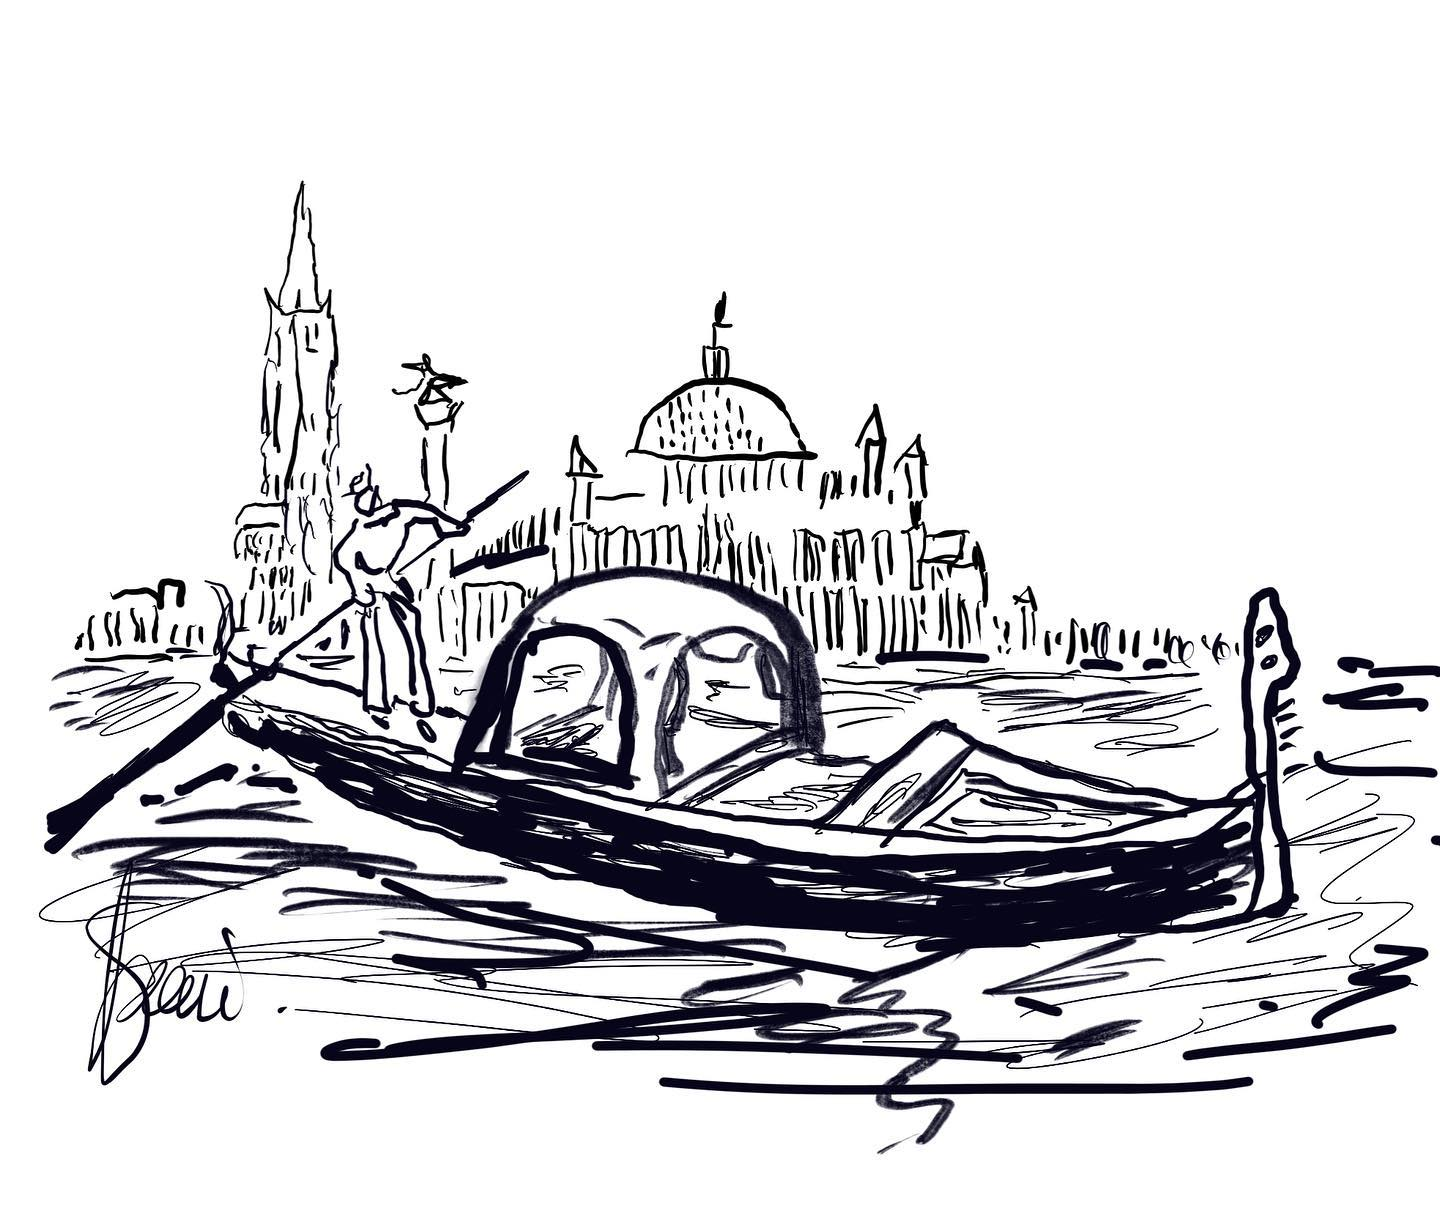 Artwork for Venice @swatchtakesmetovenice @swatch @swatch_it